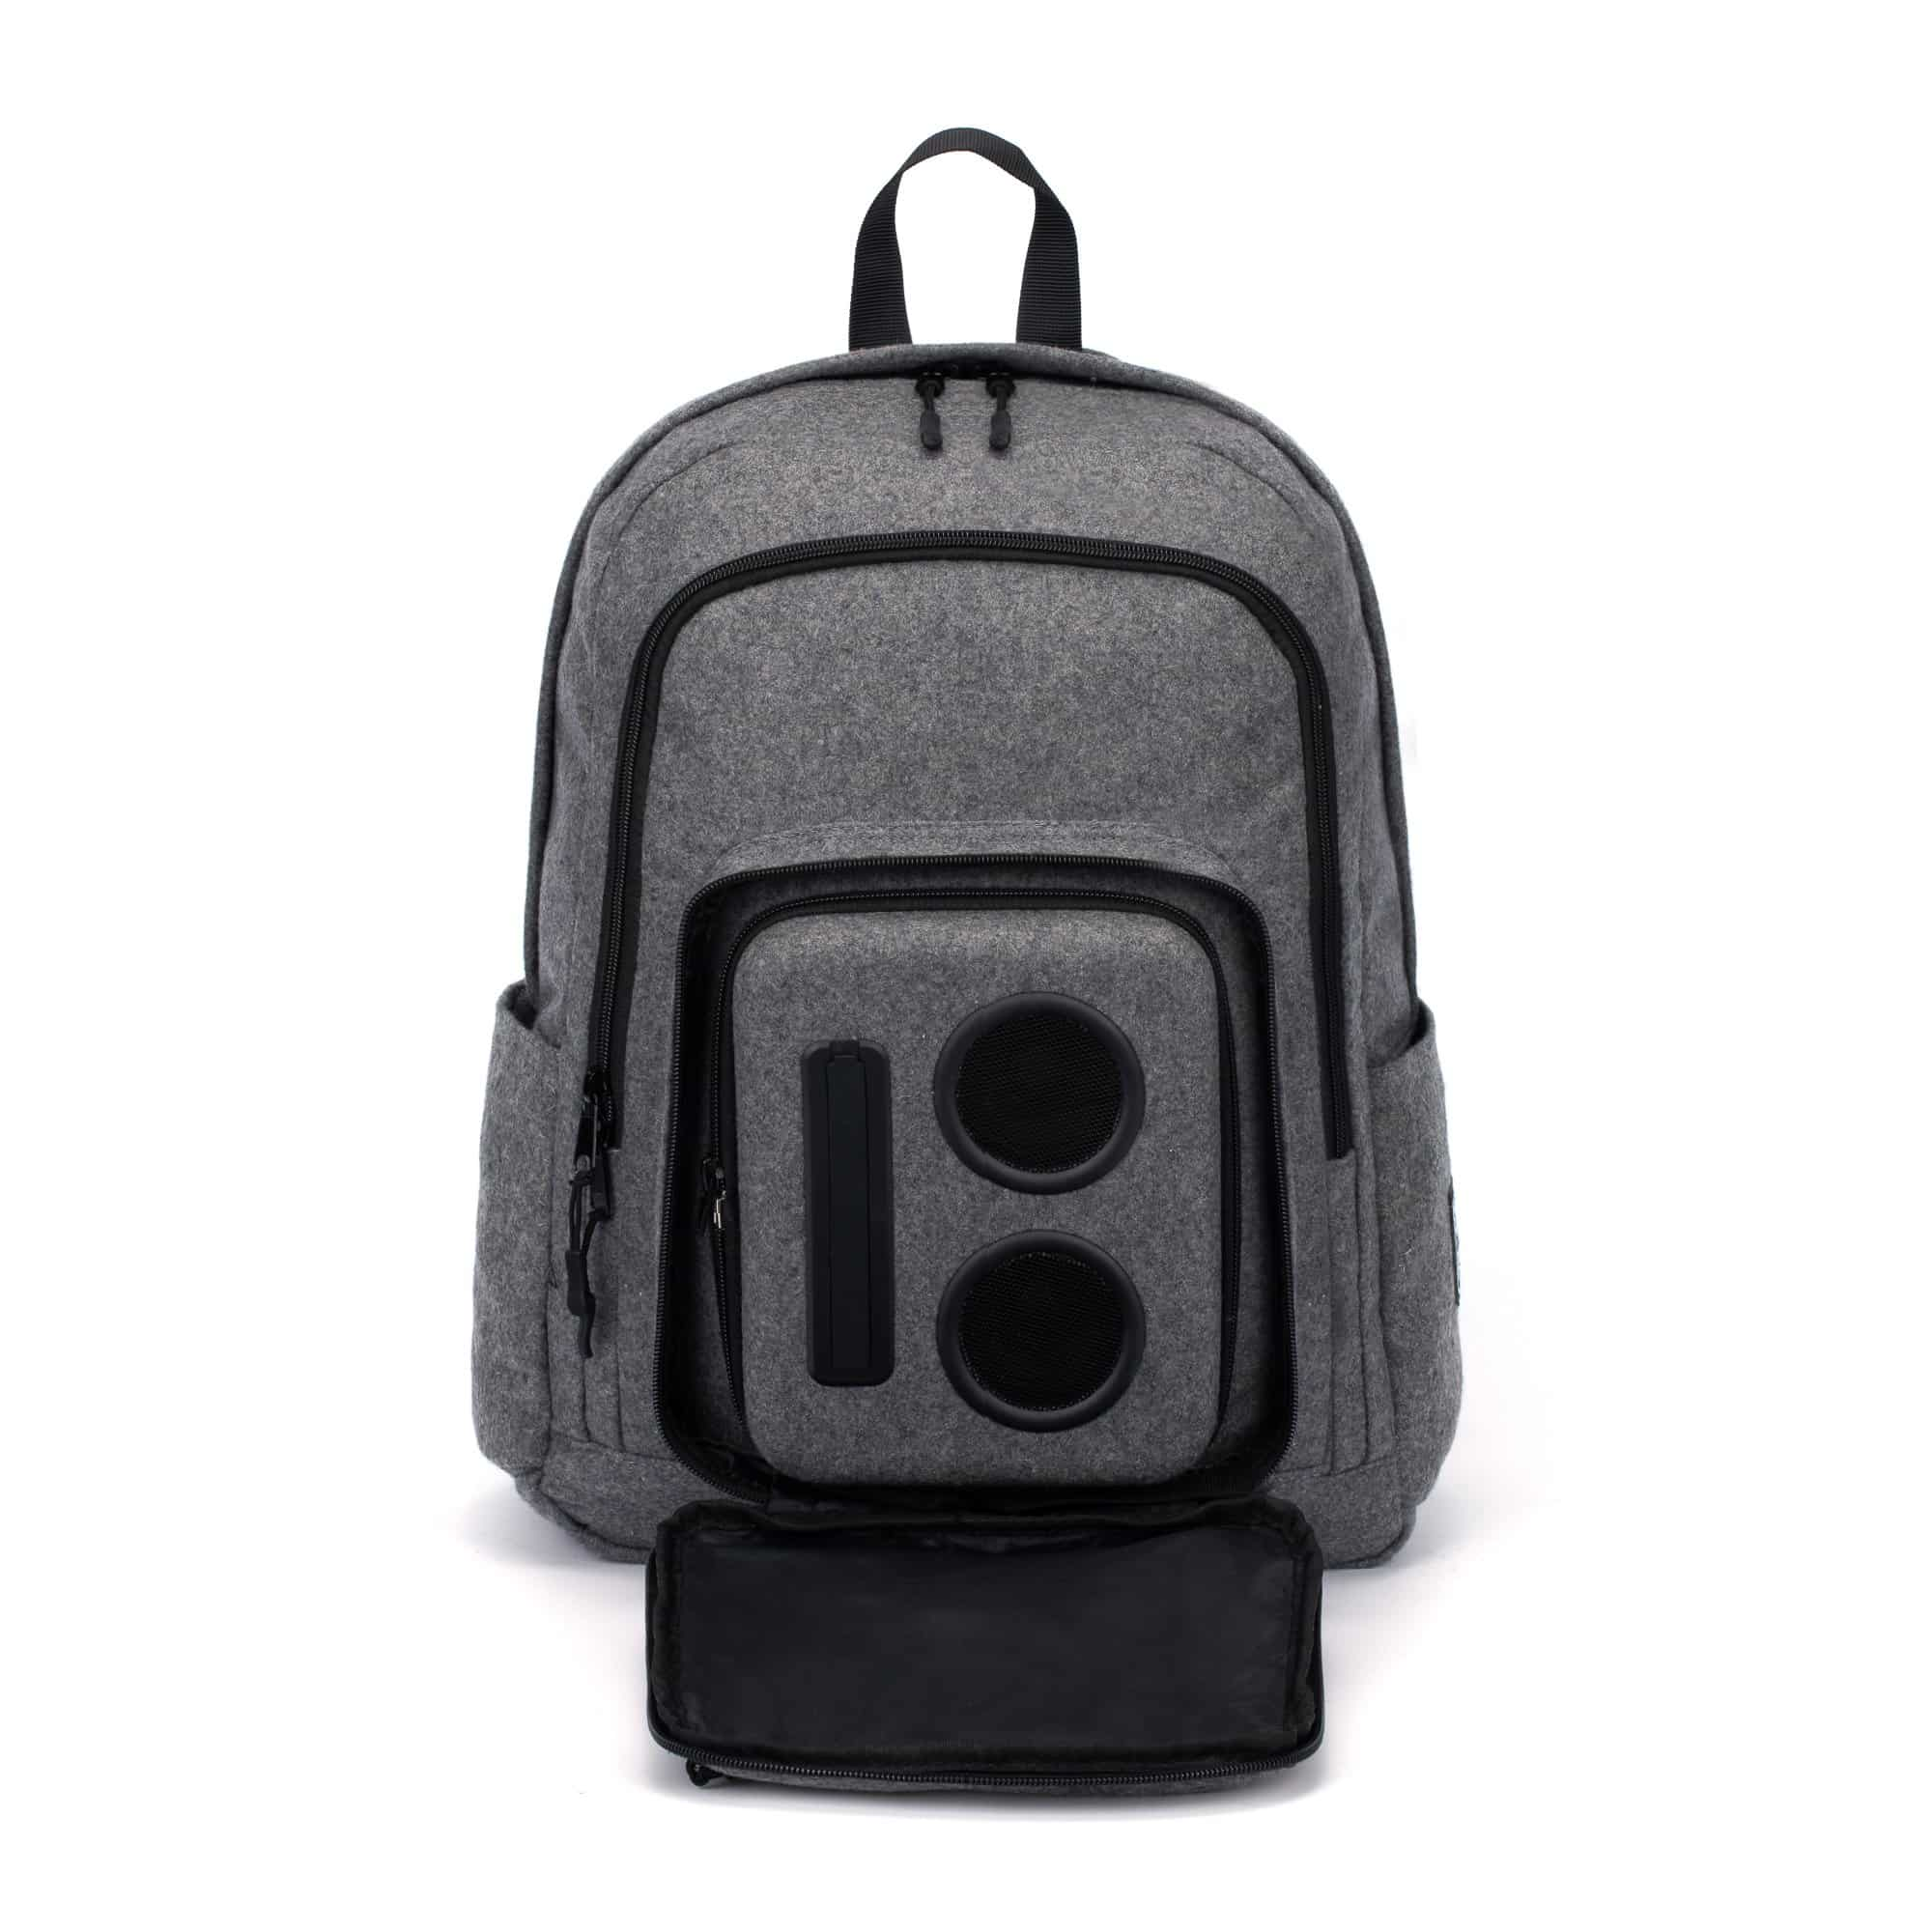 Bluetooth Speaker Backpack with 20-Watt Speakers and Sub 12